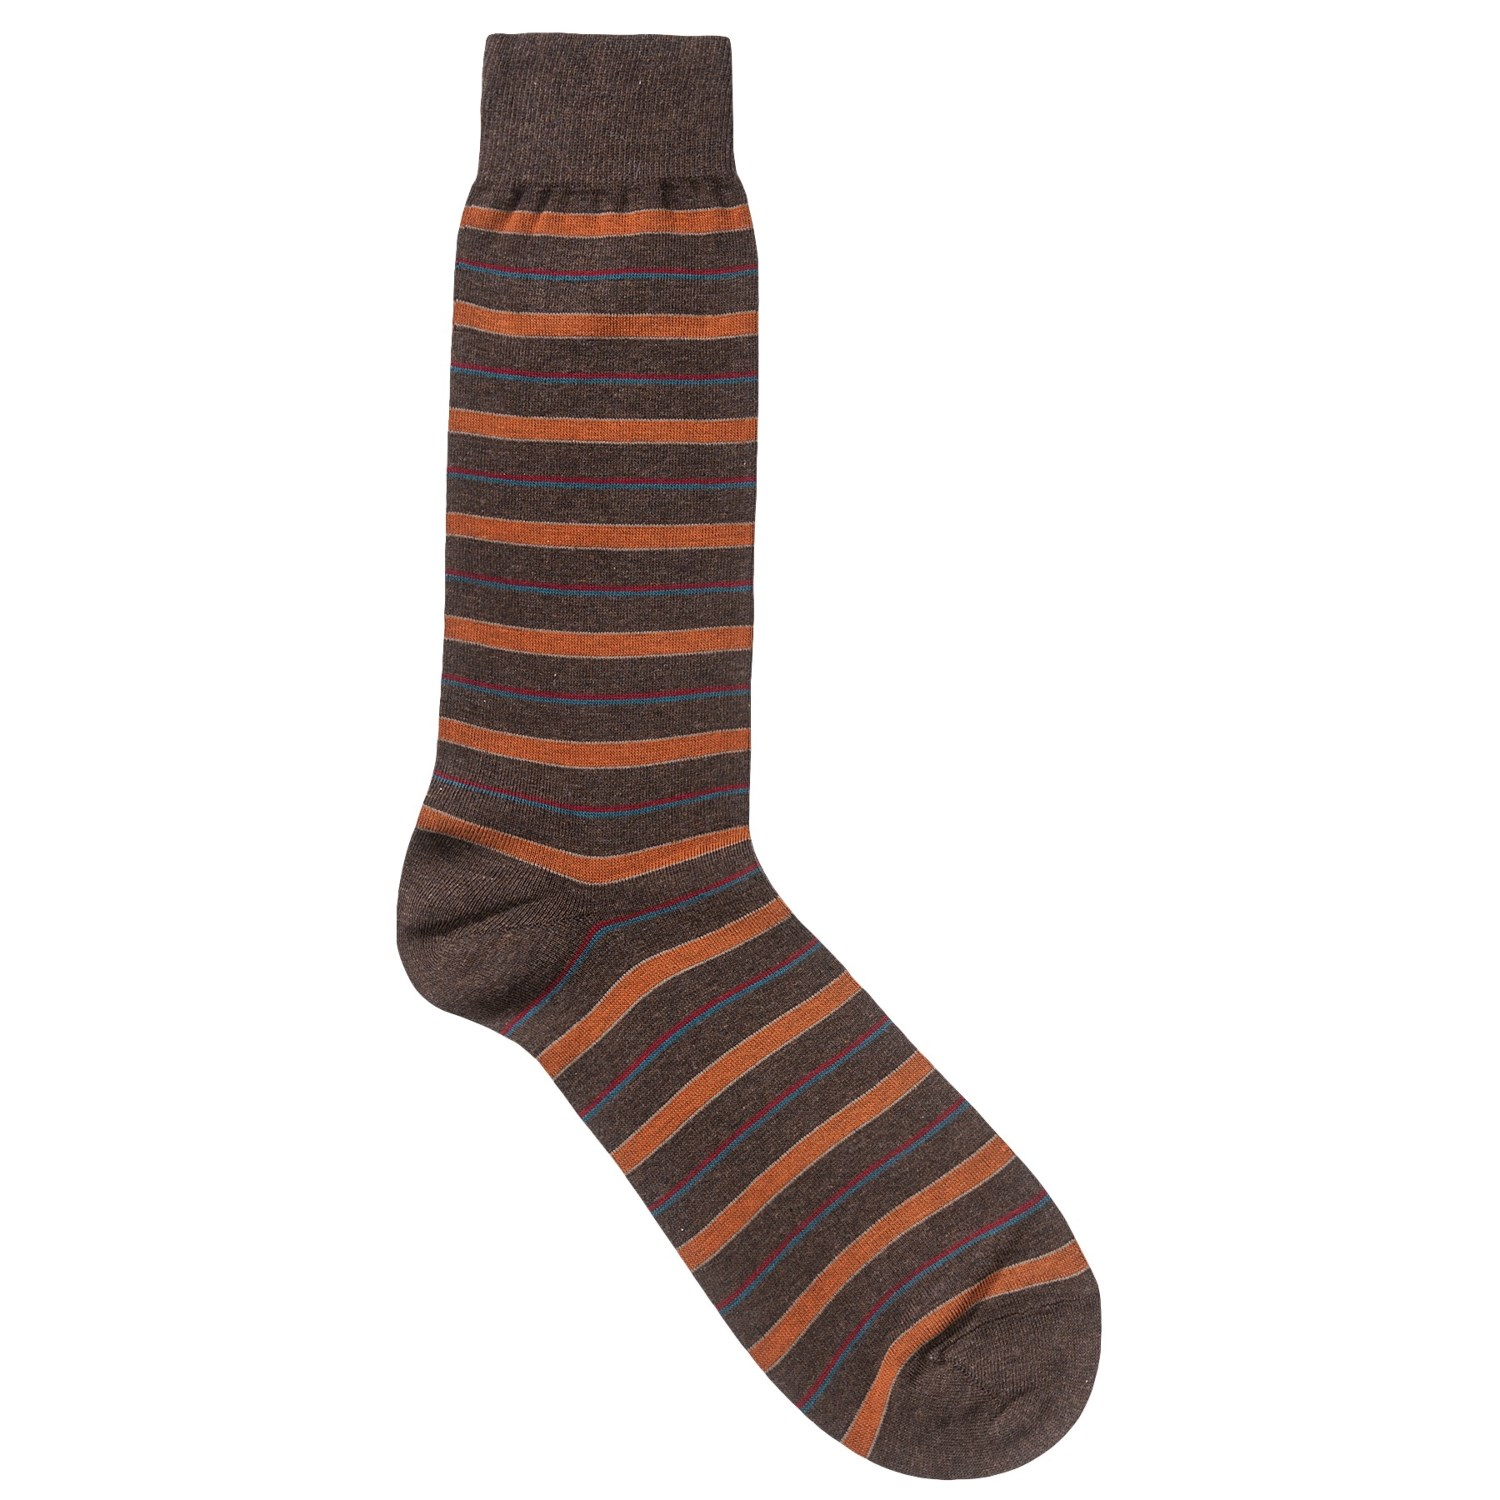 Pantherella Cotton-Cashmere Blend Dress Socks